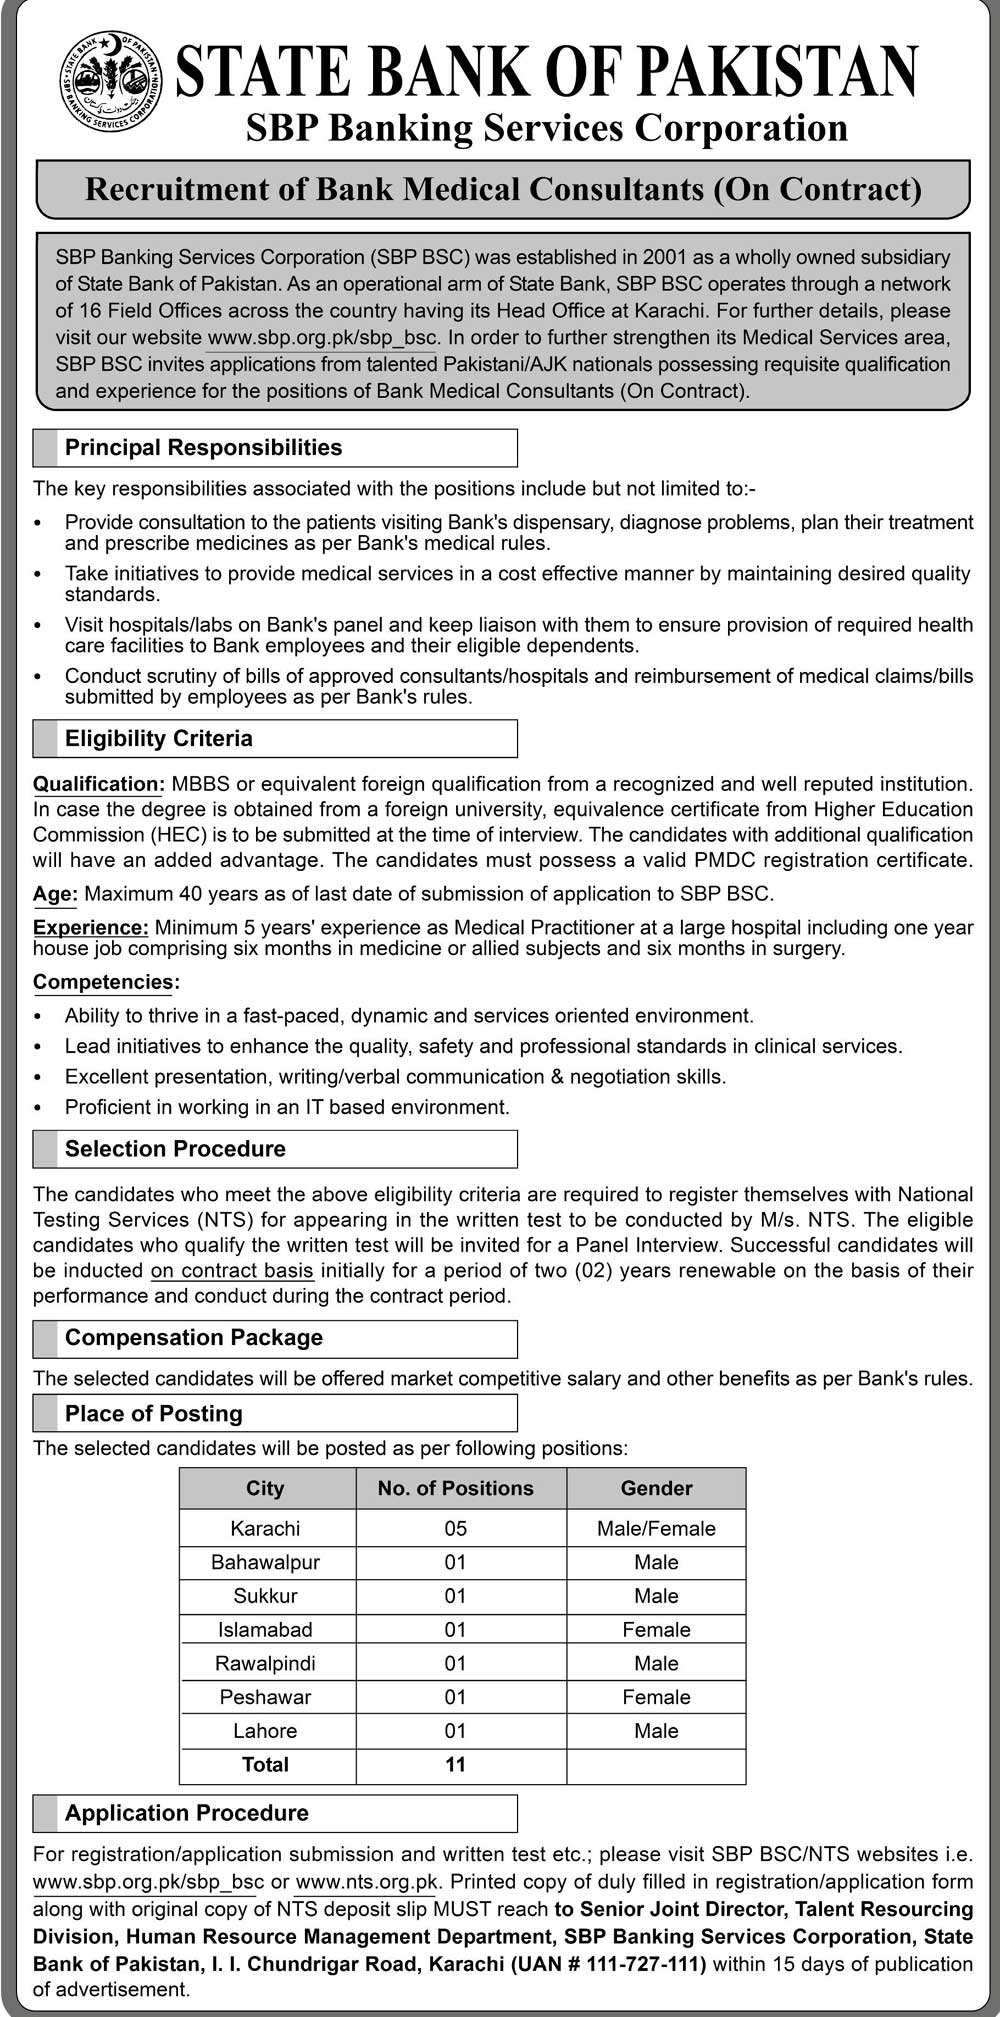 NTS Jobs In State Bank Of Pakistan 26 Apr 2019